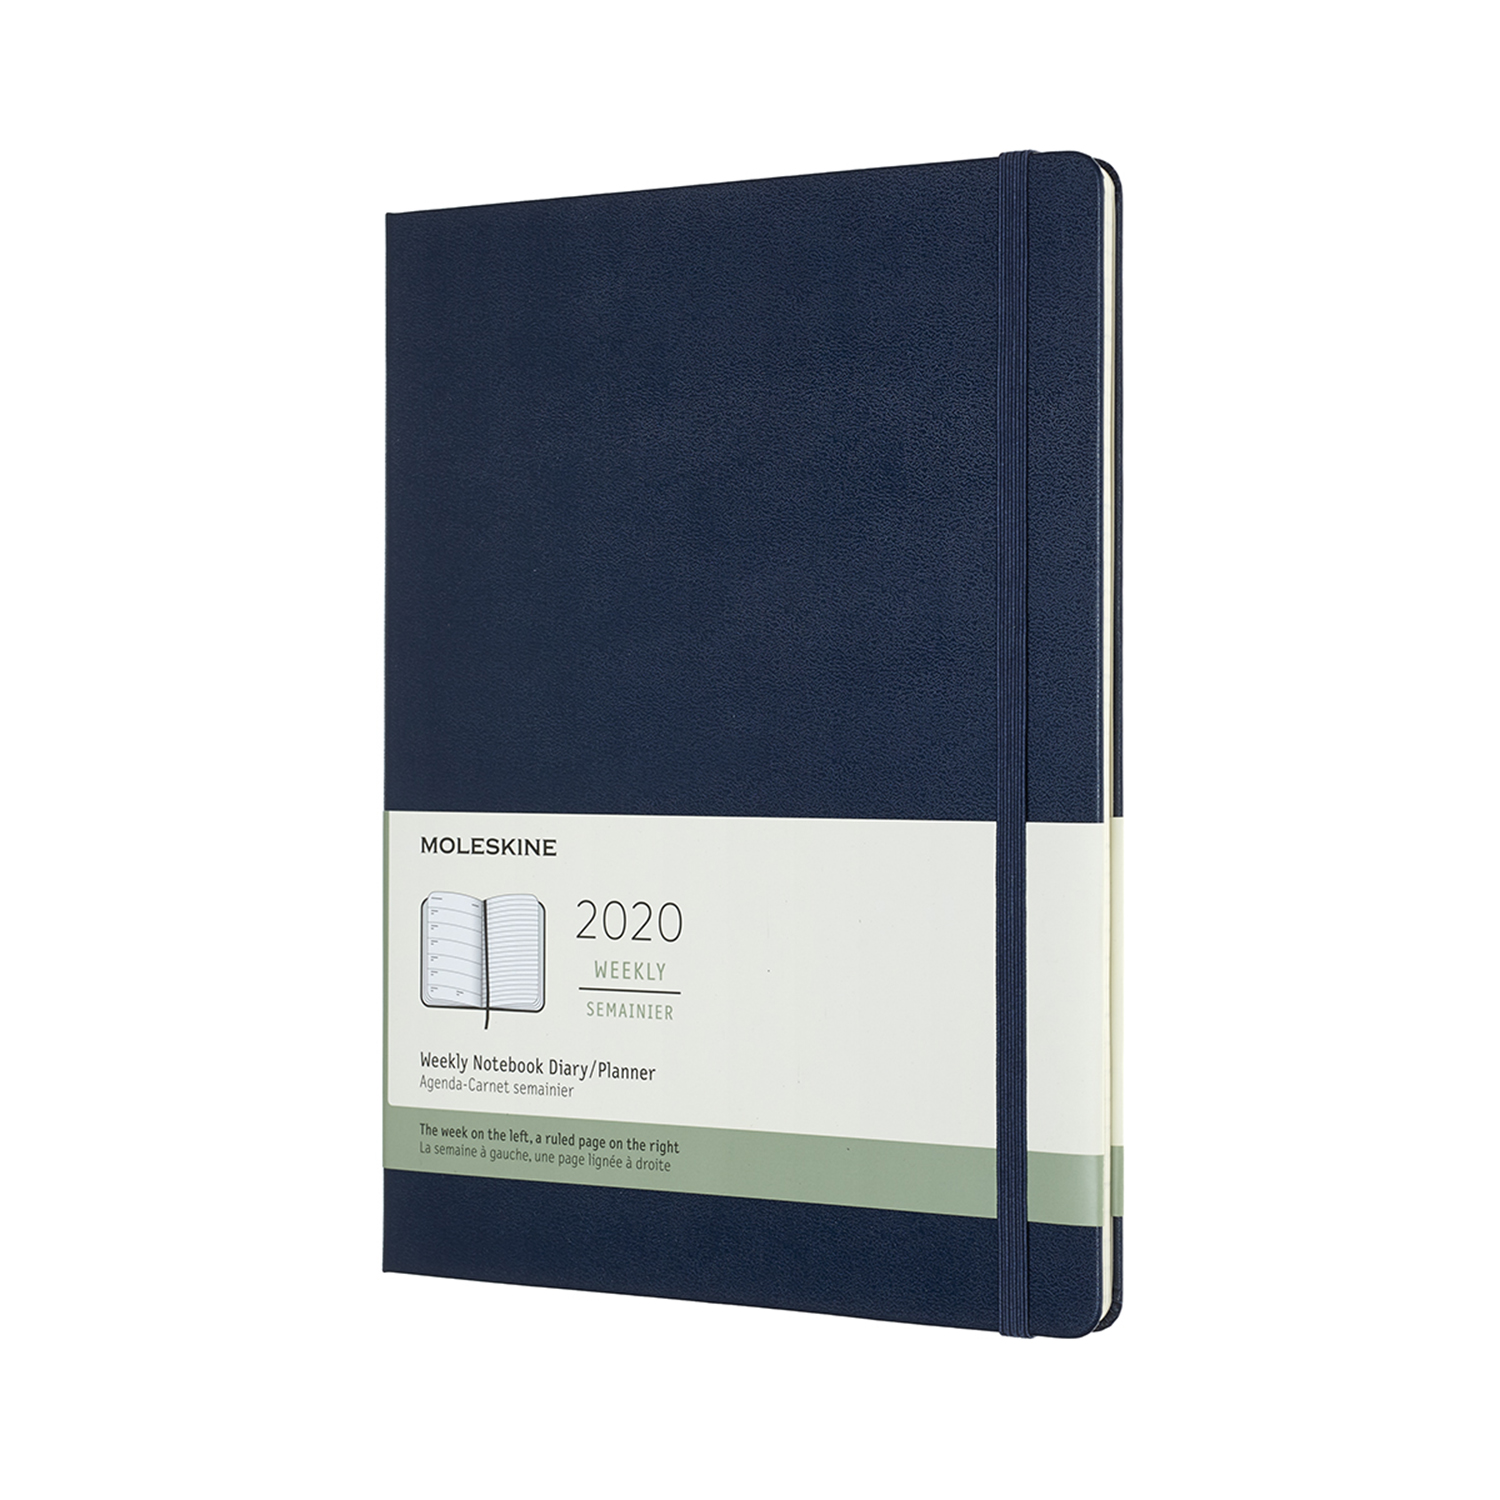 SAPPHIRE BLUE WEEKLY EXTRALARGE HARDCOVER 2020 DIARY